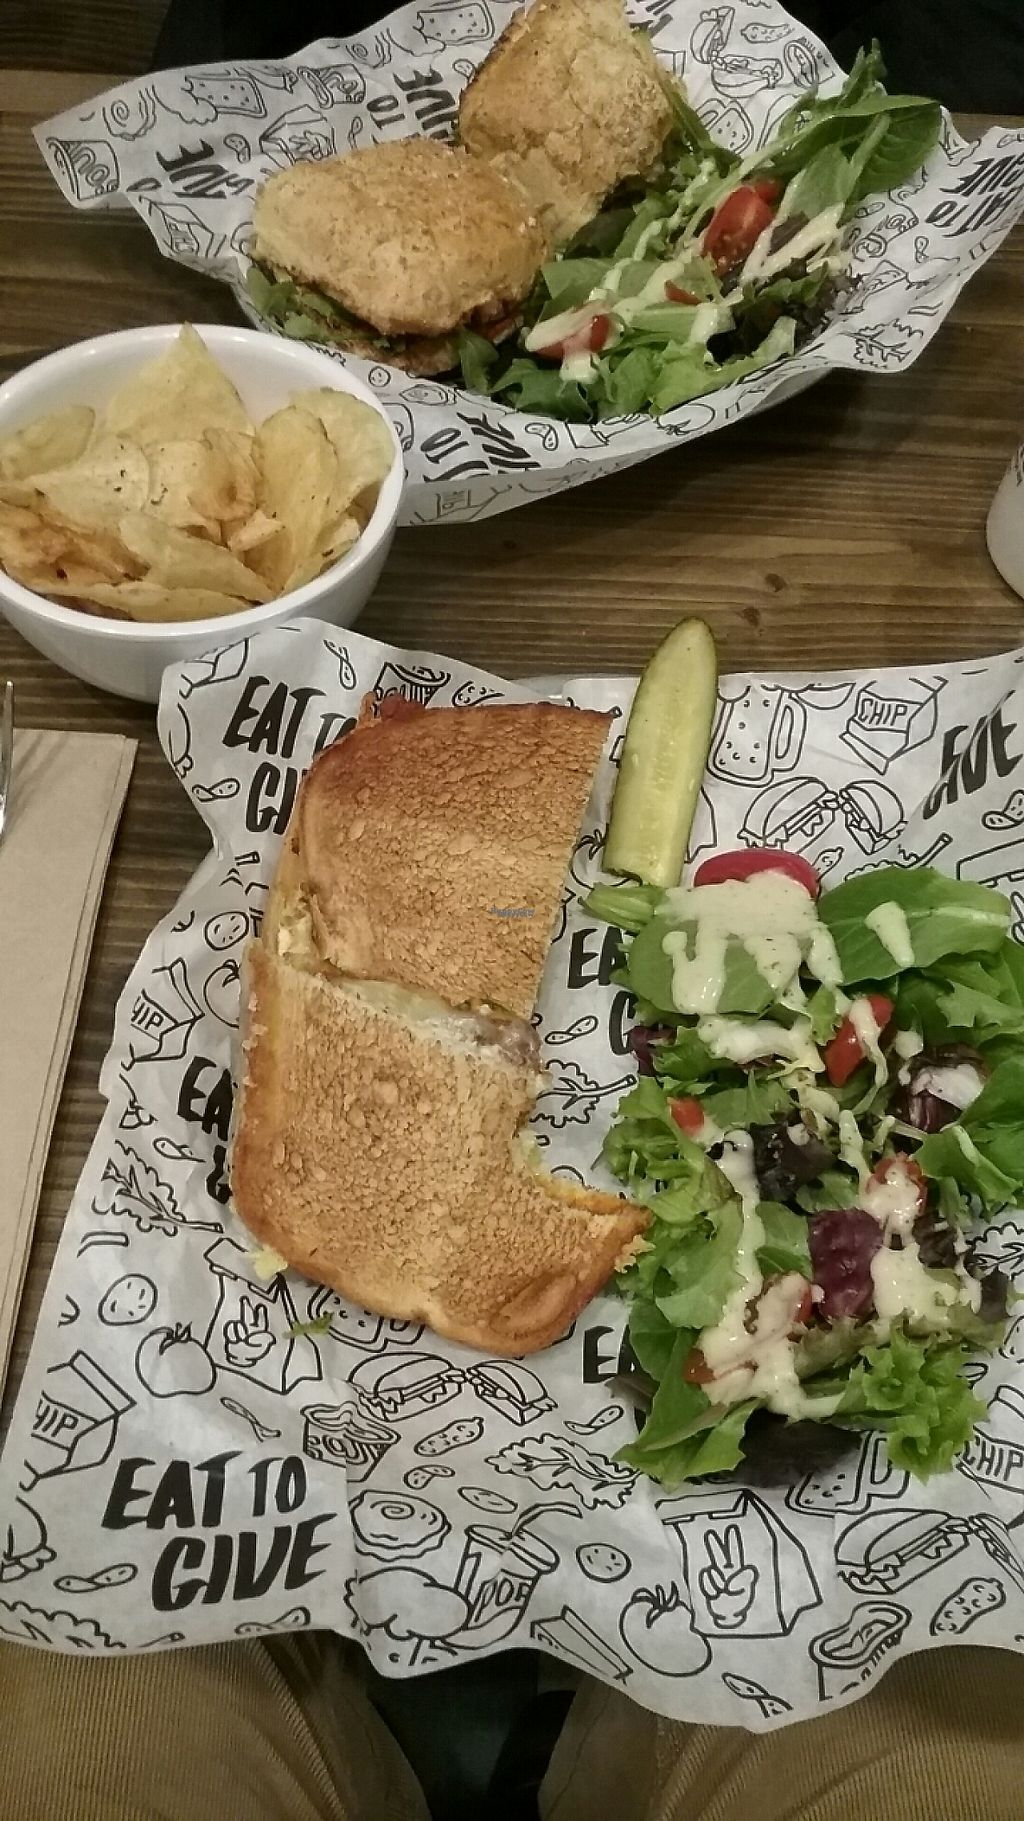 """Photo of Even Stevens Sandwiches  by <a href=""""/members/profile/VegHead12%3A34"""">VegHead12:34</a> <br/>jp grilled cheese with soyrizo  <br/> January 12, 2017  - <a href='/contact/abuse/image/85119/211273'>Report</a>"""